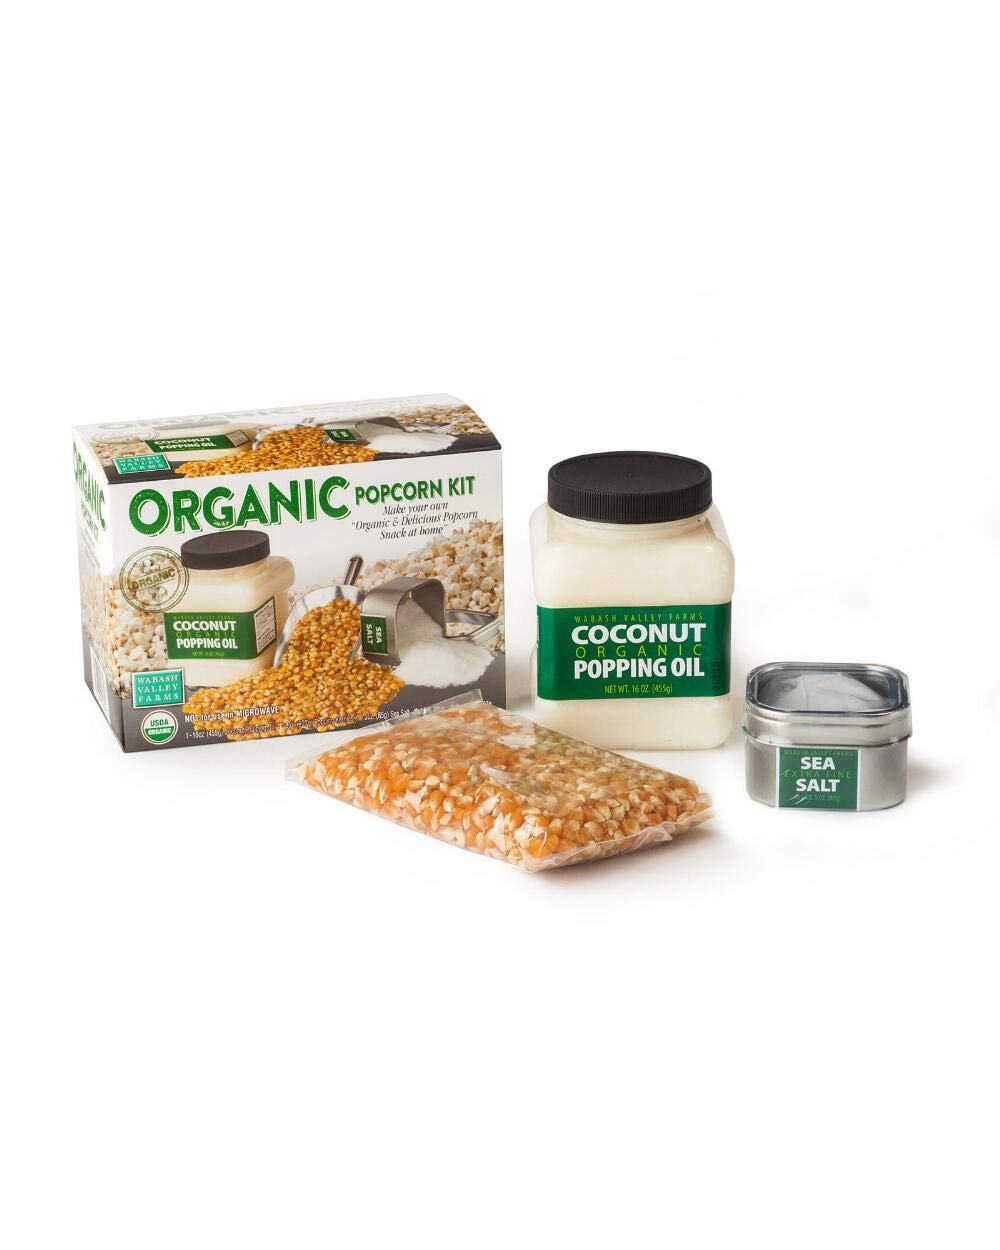 Organic Popping Set and Stainless Steel Bowl! Serving Bowl, Organic Coconut Oil, Organic Yellow Kernels And Fine Sea Salt! Non-Gmo, Gluten Free & 100% Whole Grain! Tasty Delicious Healthy Snack! by WVF (Image #2)